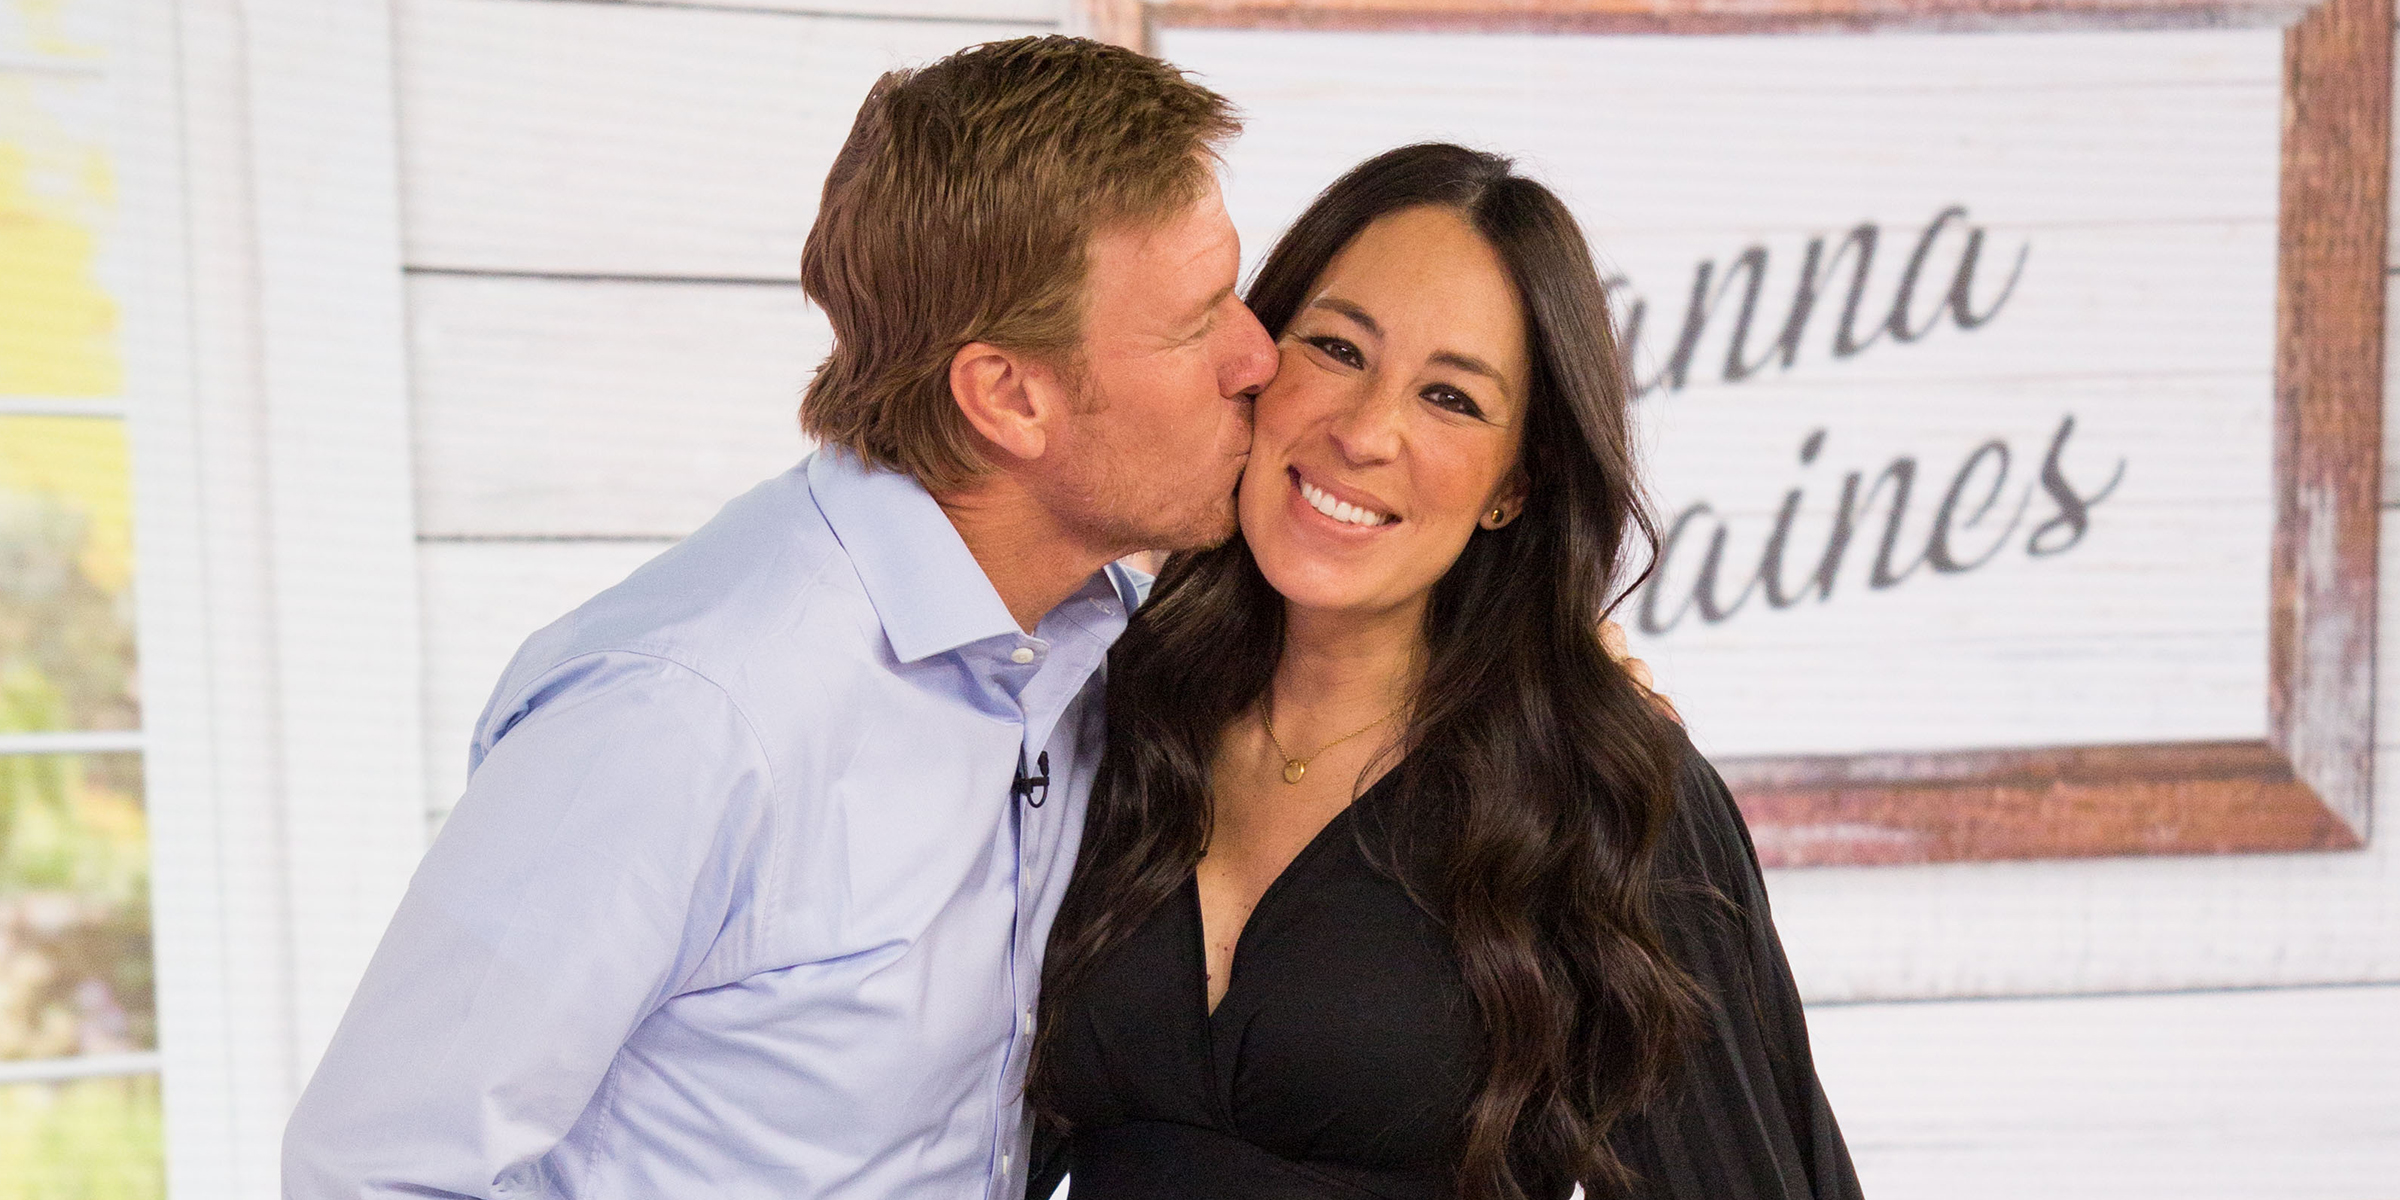 Joanna Gaines Reveals Her Reaction To Learning She Was